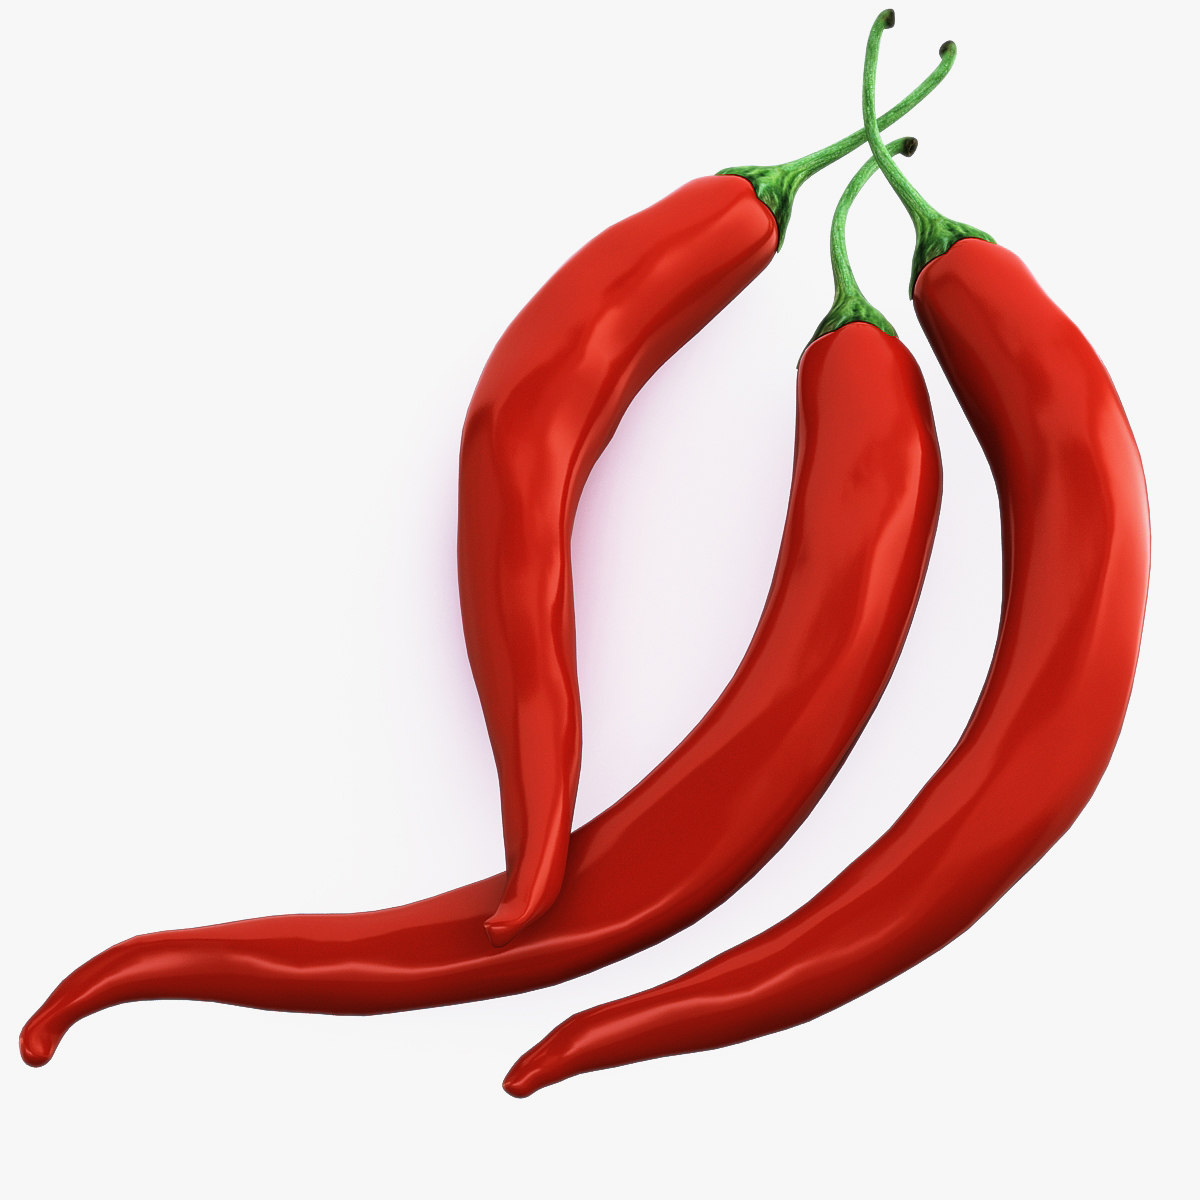 Pepper_Chili_01.jpg